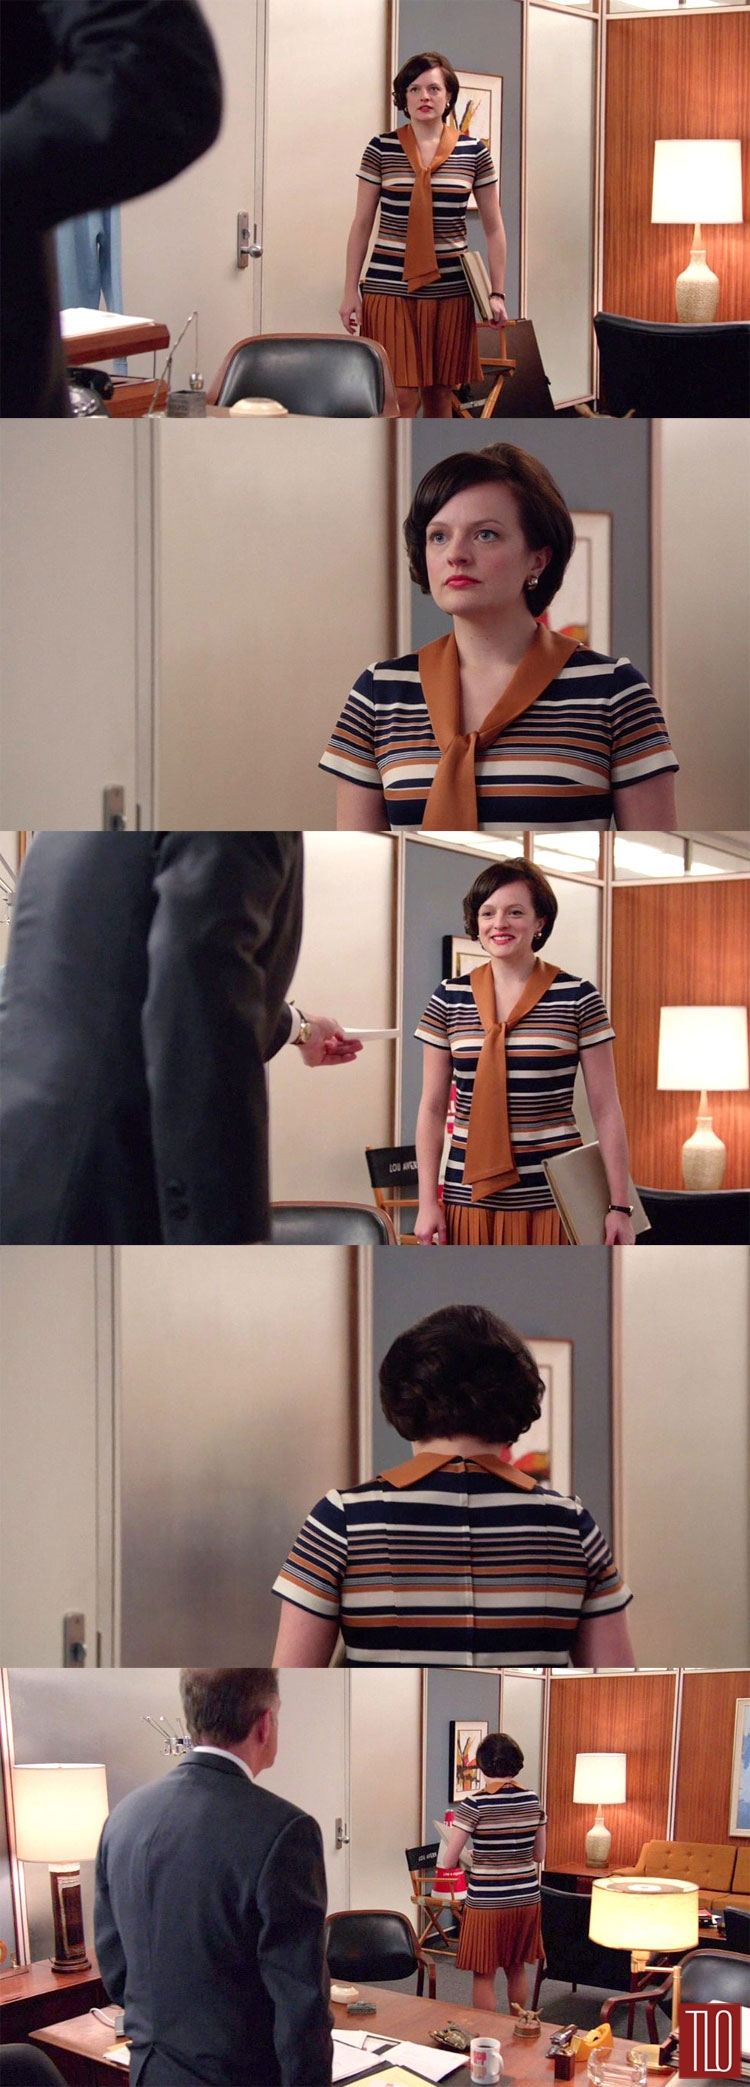 Mad-Men-Mad-Style-Season-7-Episode-4-Tom-Loenzo-Site-TLO (5)